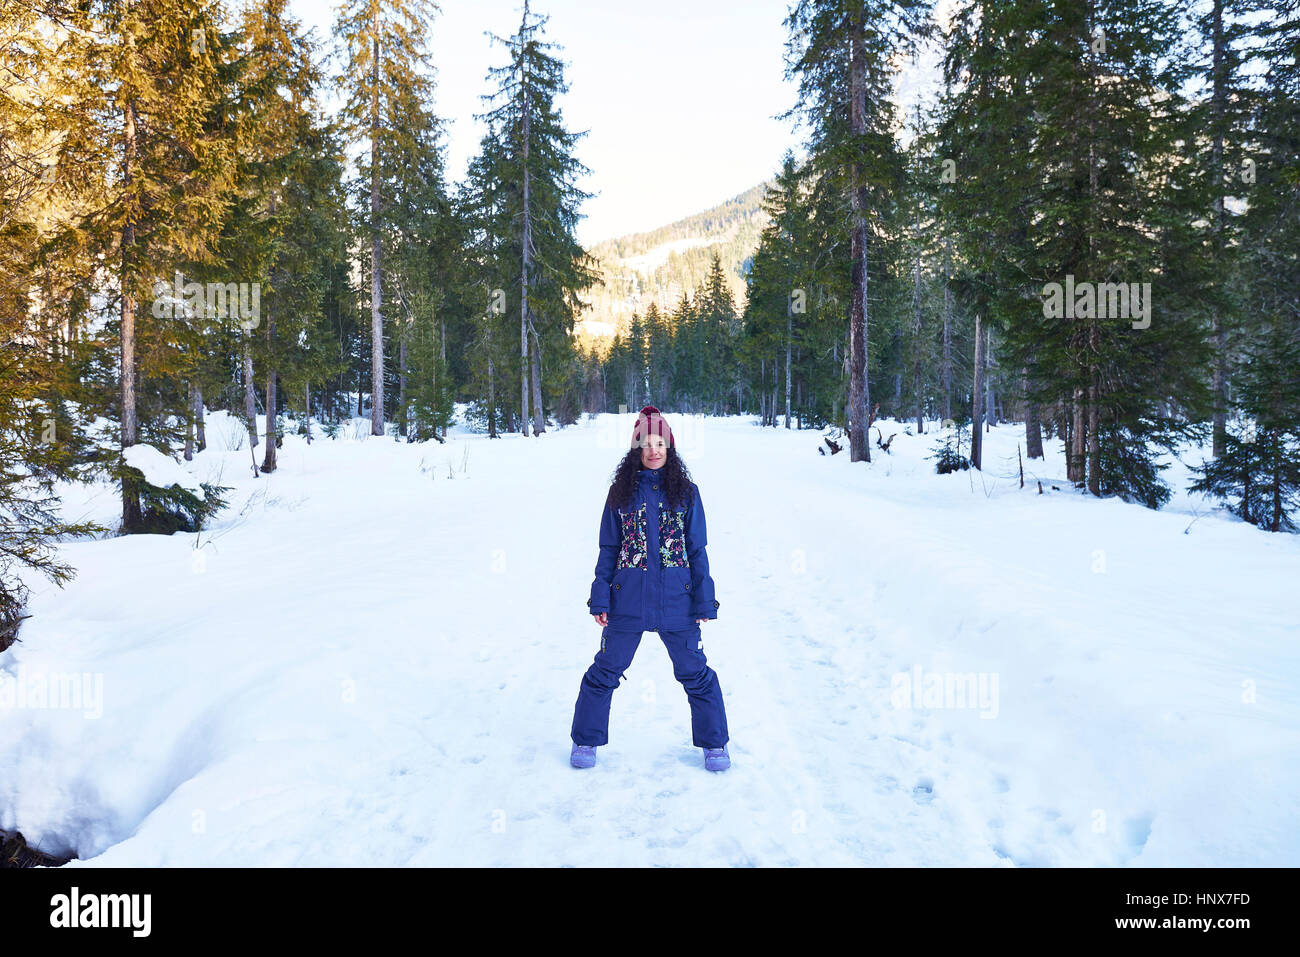 Portrait of woman in knit hat and winter clothes in snowy forest, Austria - Stock Image